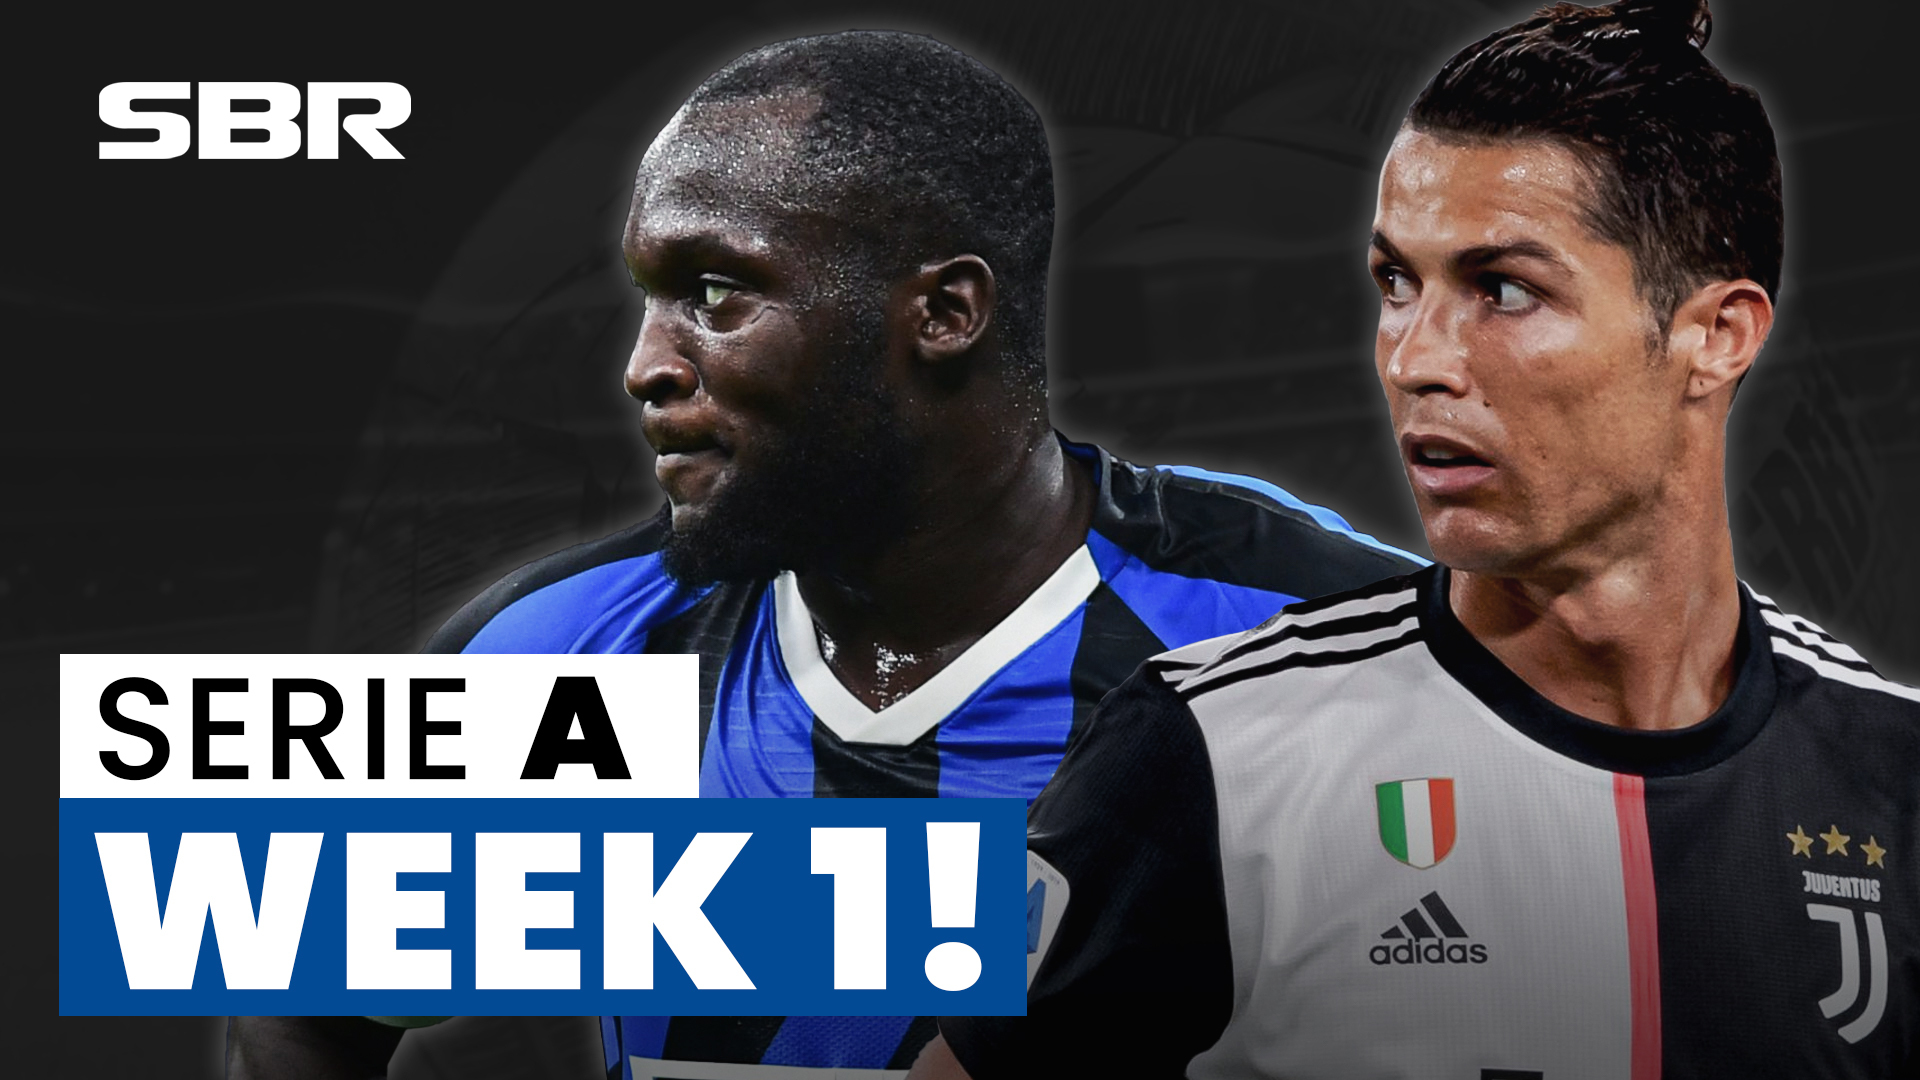 Serie A Week 1 Football Match Tips, Odds & Predictions